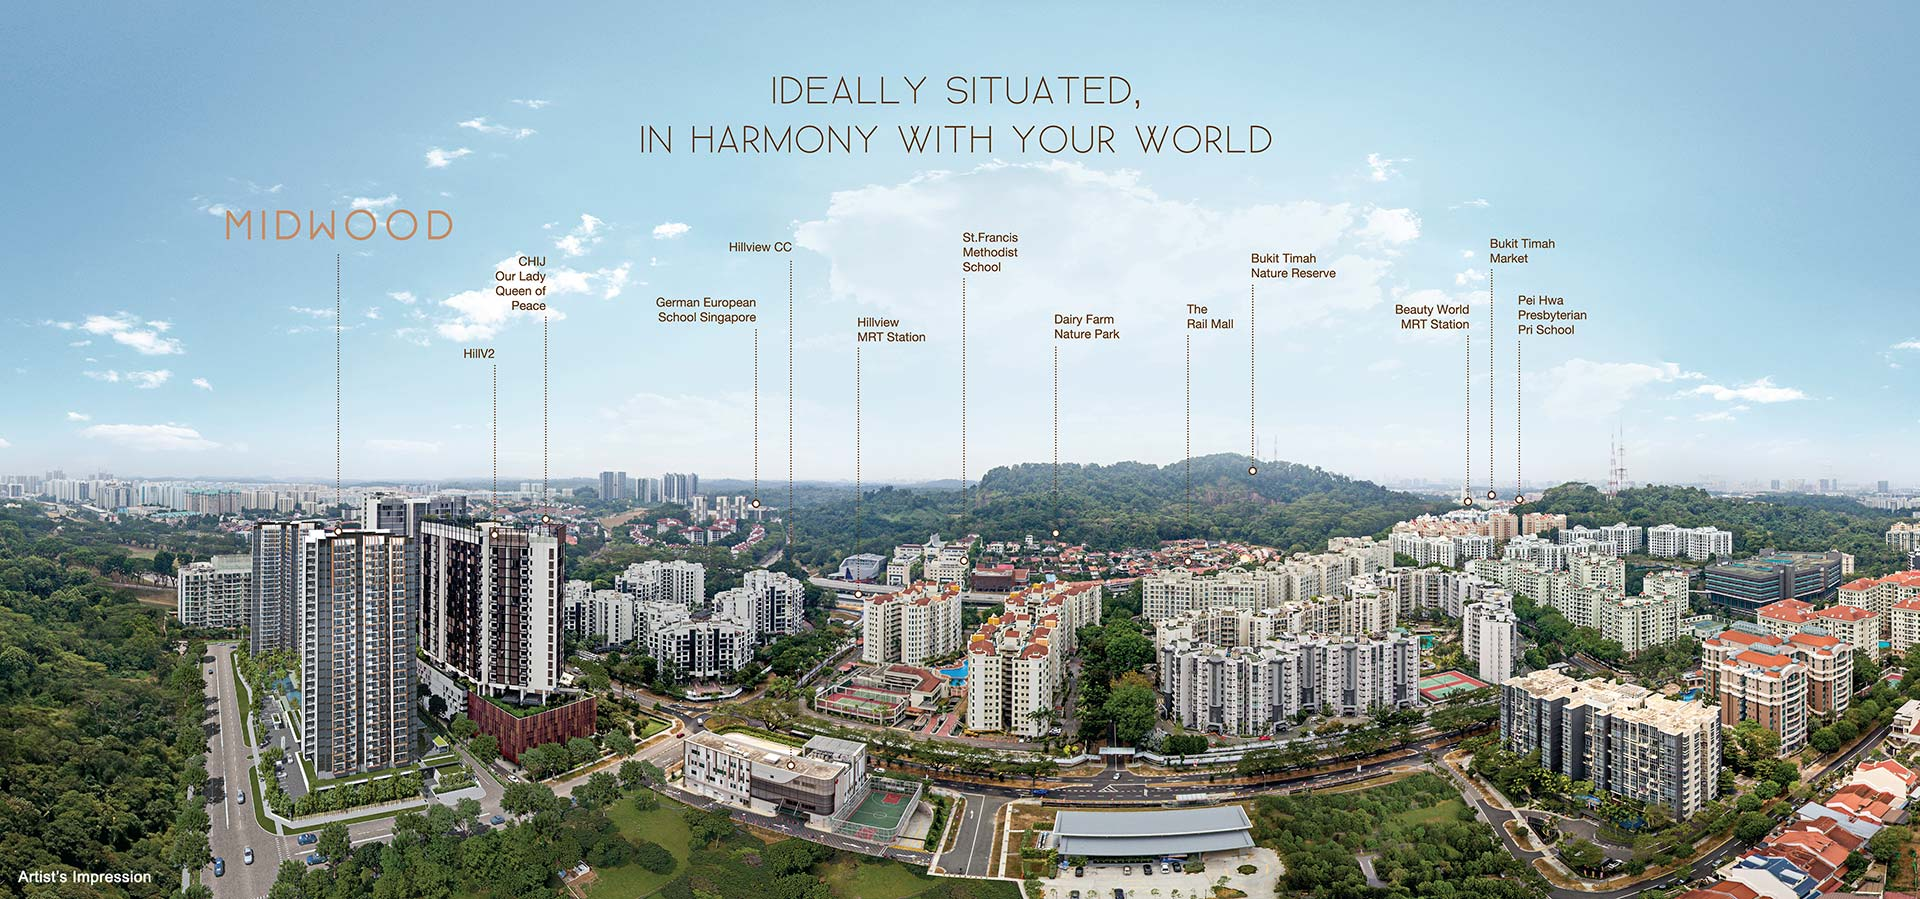 Midwood Location 5 Mins Walk to Hillview MRT Station, Next to HillV2 Mall